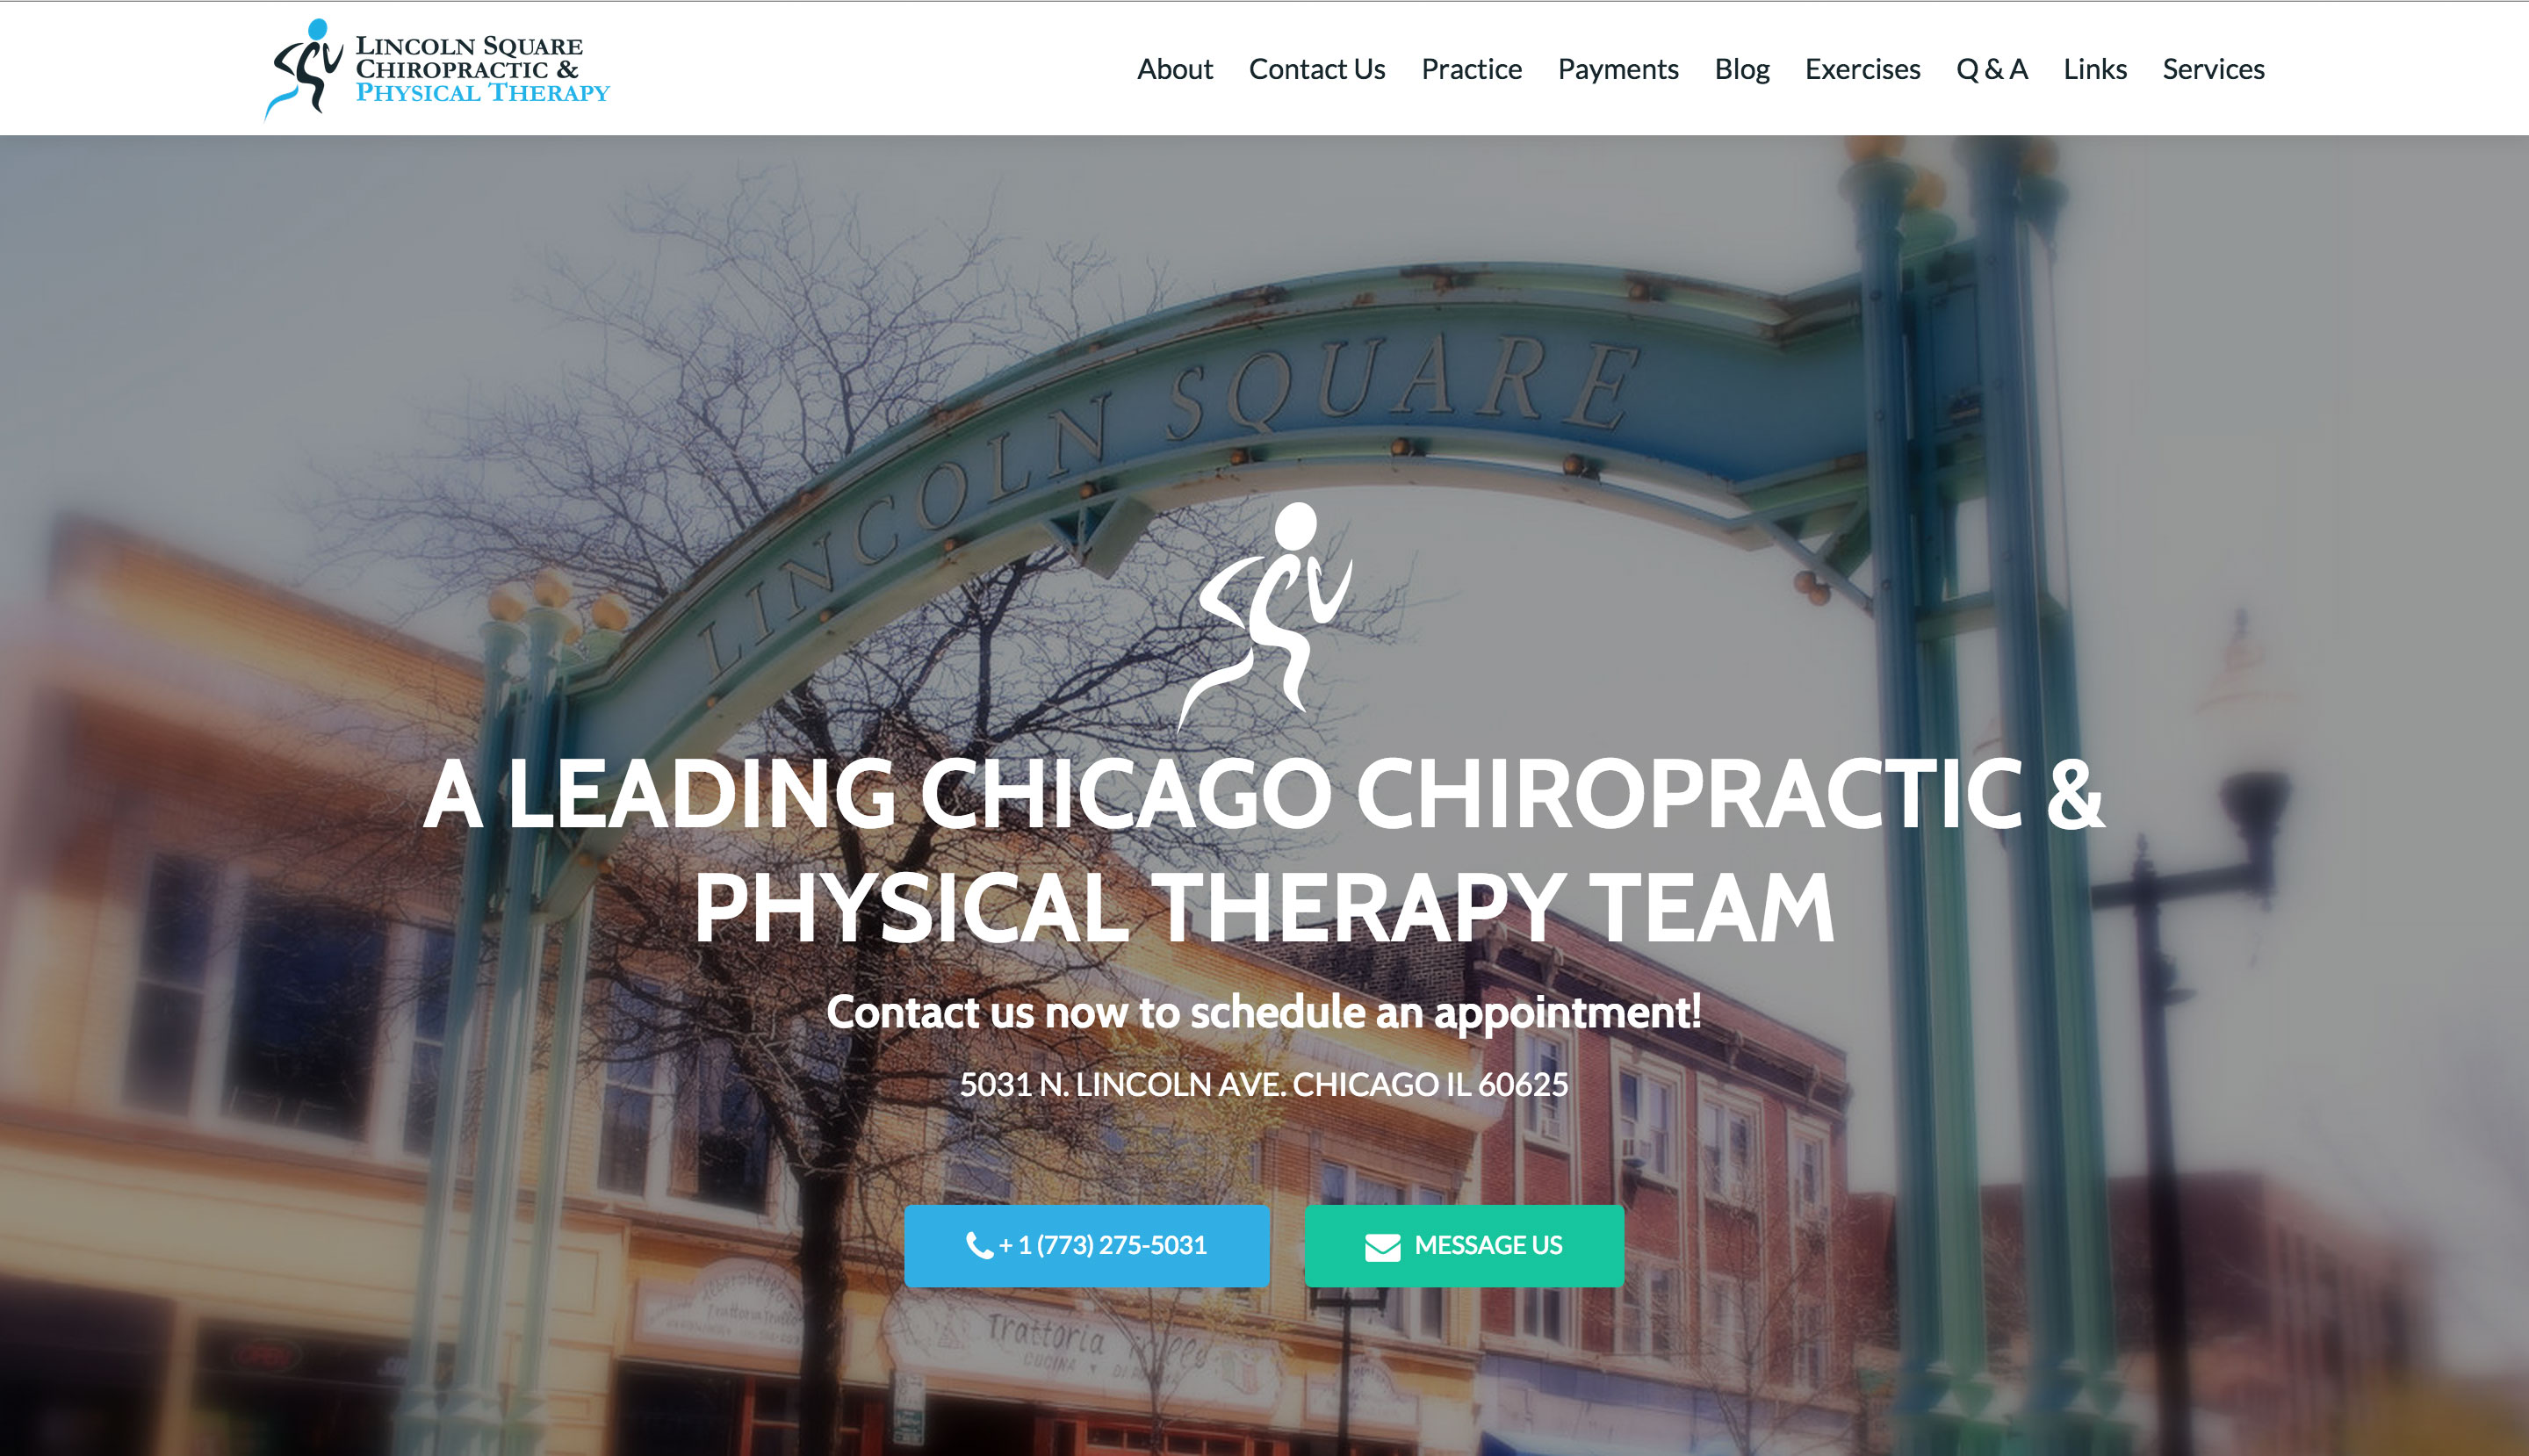 Lincoln Square Chiropractic and Physical Therapy Website After Pic